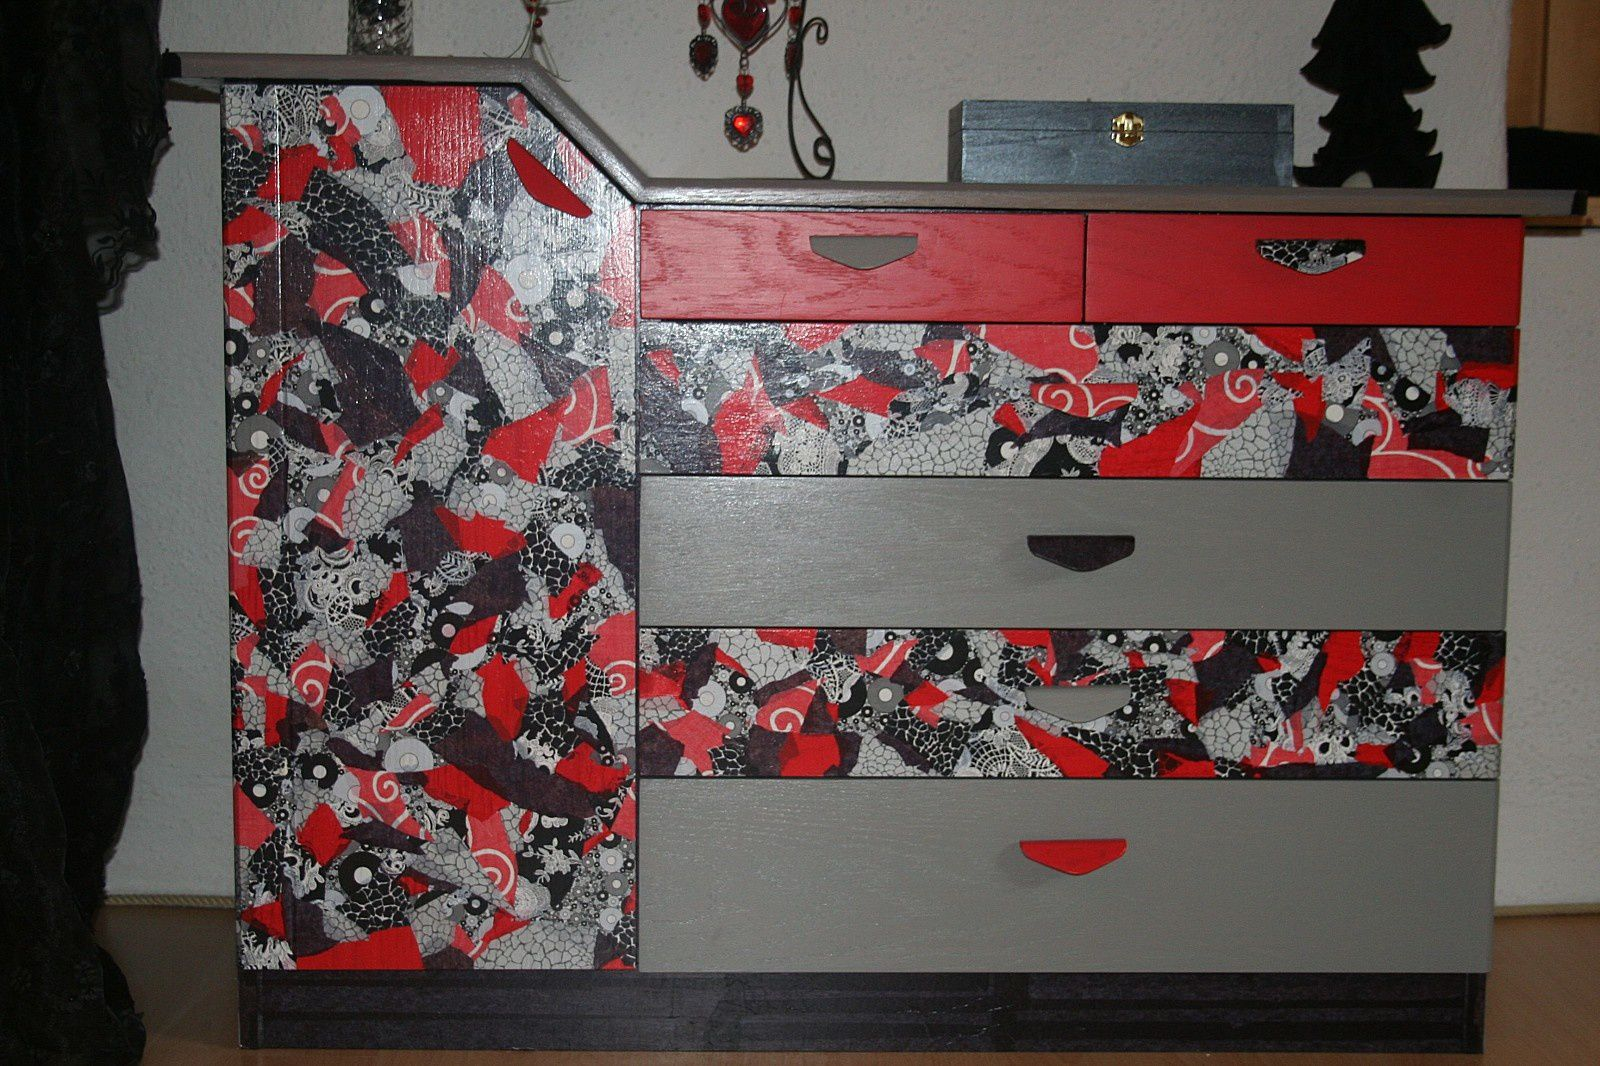 decopatch objet et relooking de meubles val vaurien. Black Bedroom Furniture Sets. Home Design Ideas